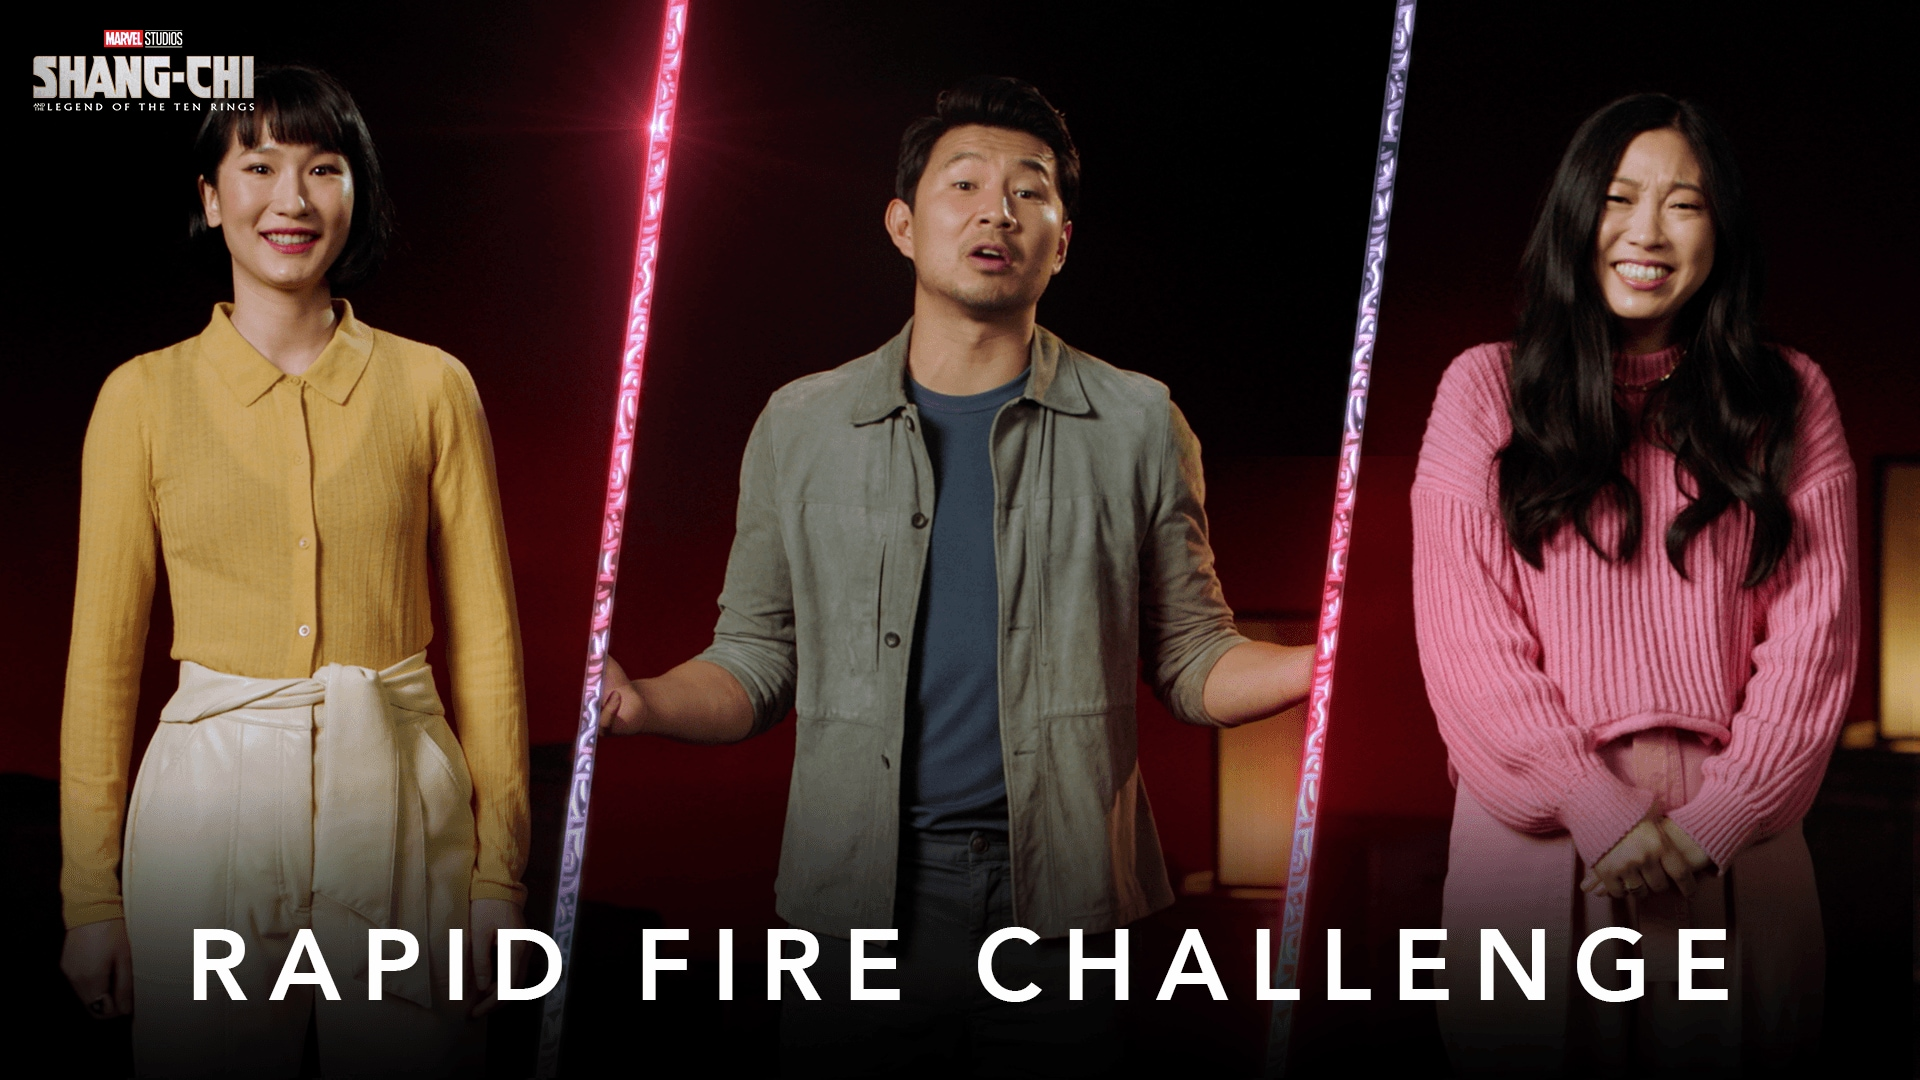 Rapid Fire Challenge   Marvel Studios' Shang-Chi and The Legend of The Ten Rings